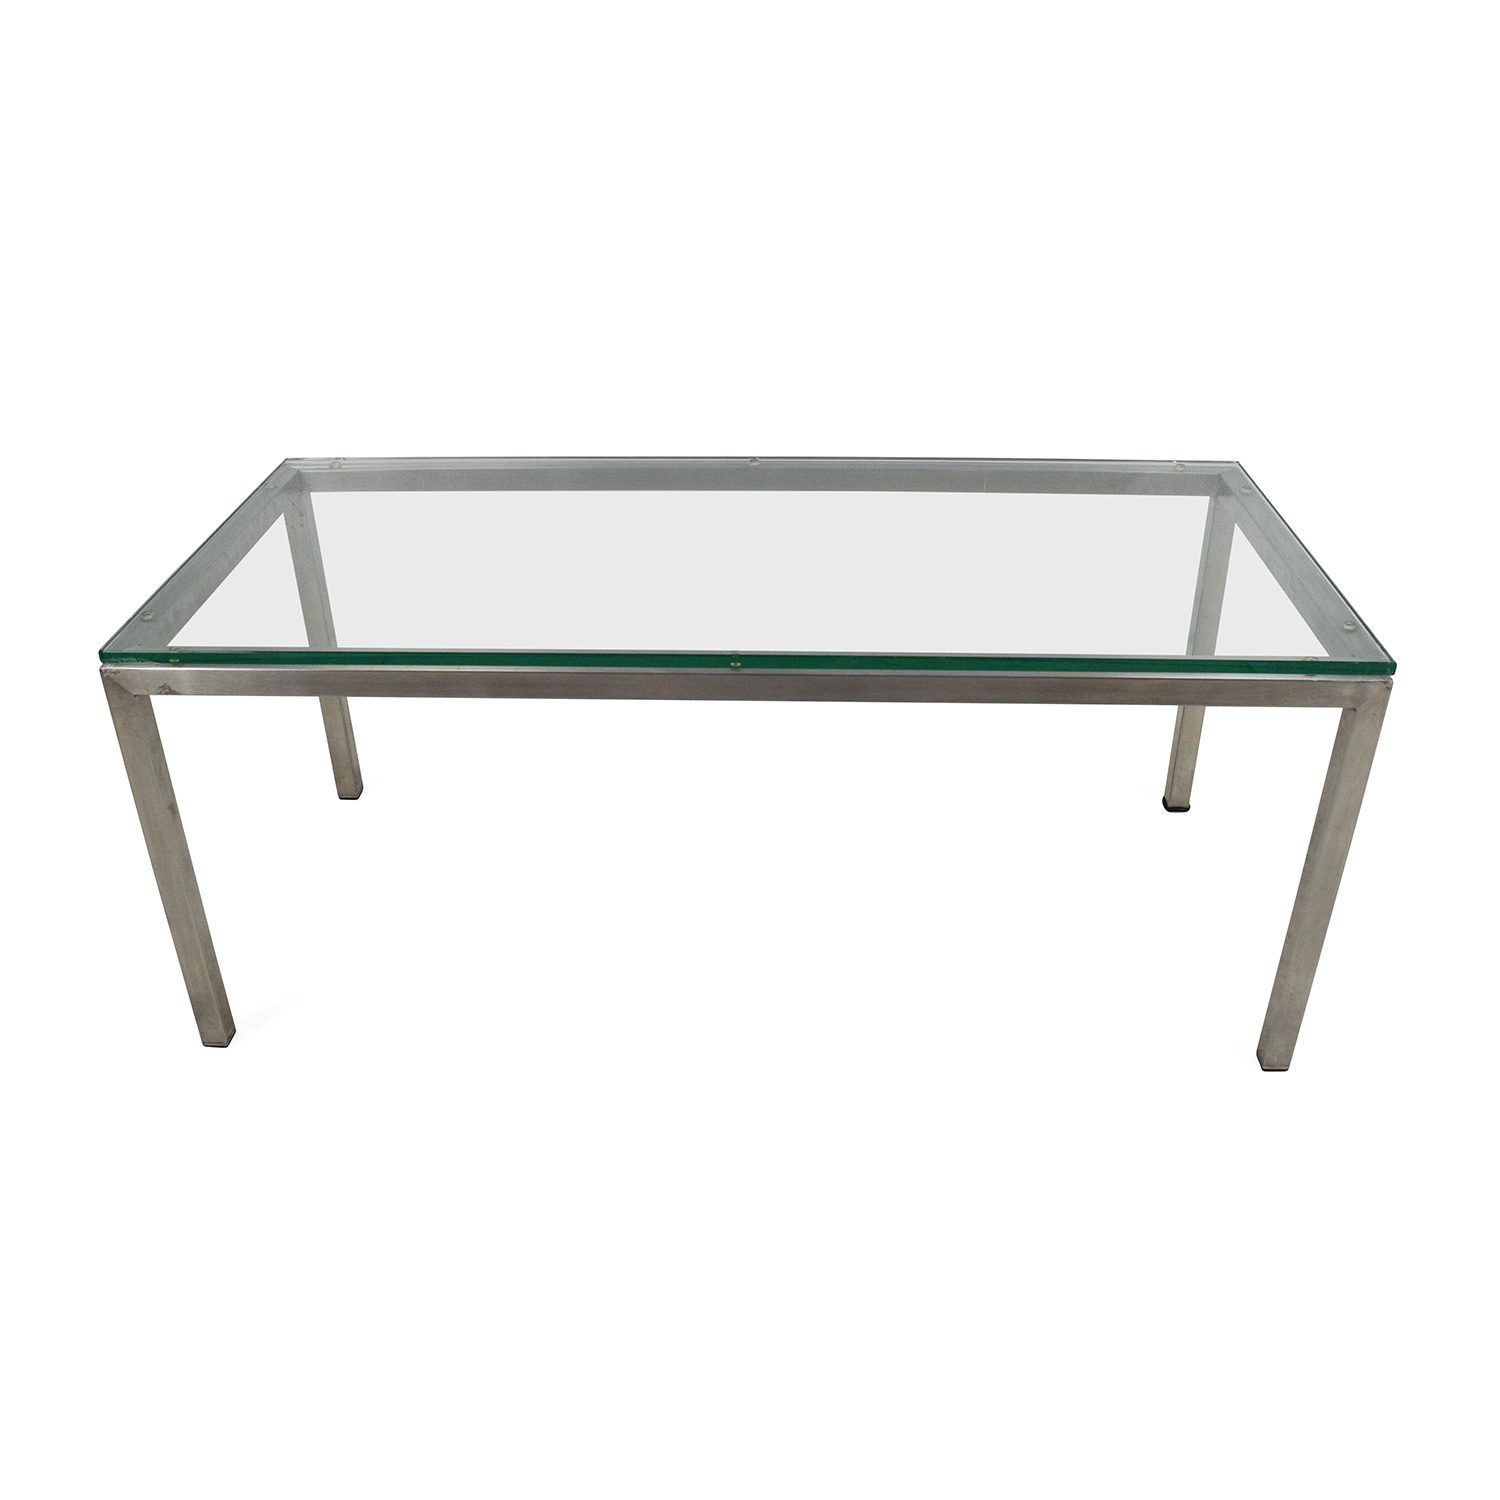 Room and Board Room and Board Glass Coffee Table dimensions